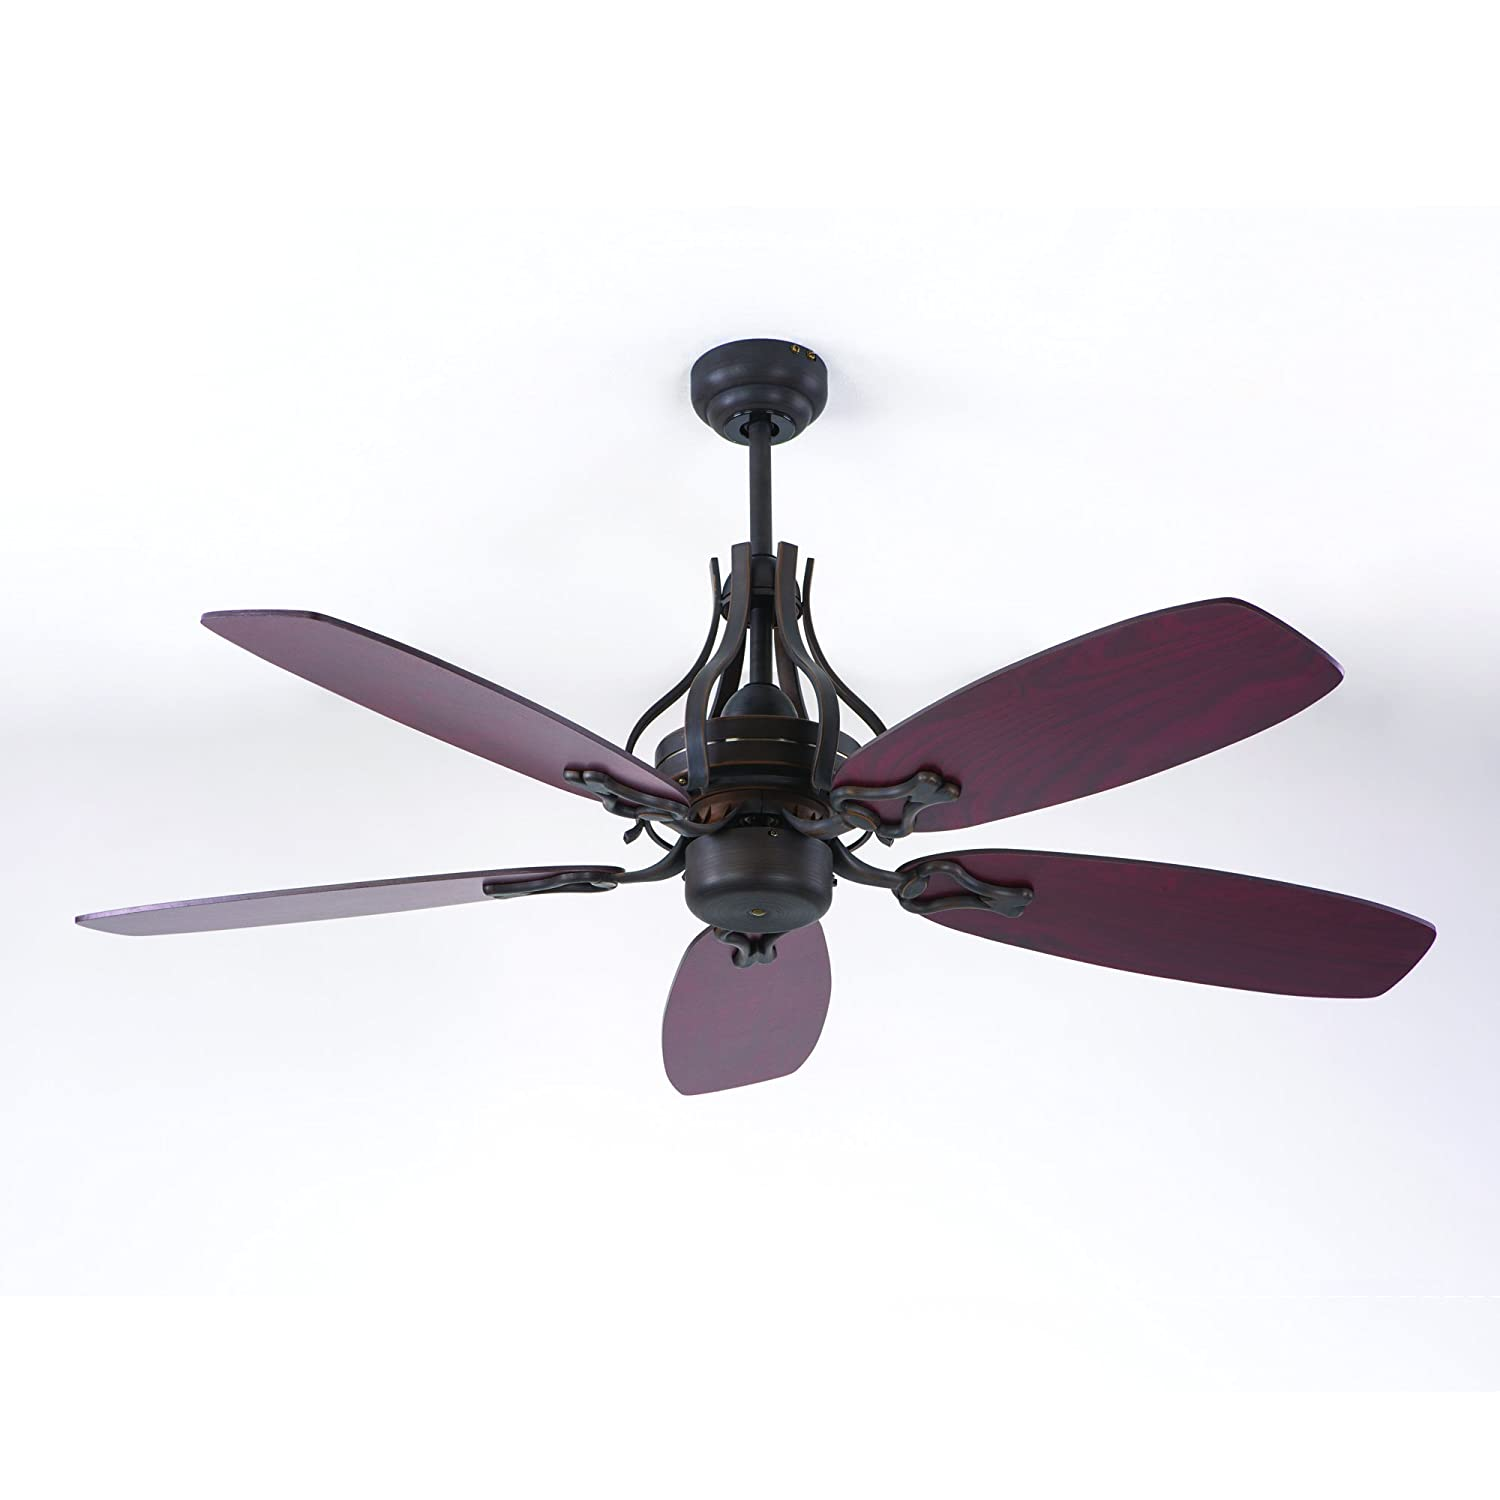 Yosemite Home Decor WASHBURN-ORB-NLK 52-Inch Ceiling Fan in Oil Rubbed Bronze Finish with 80-Inch Lead Wire